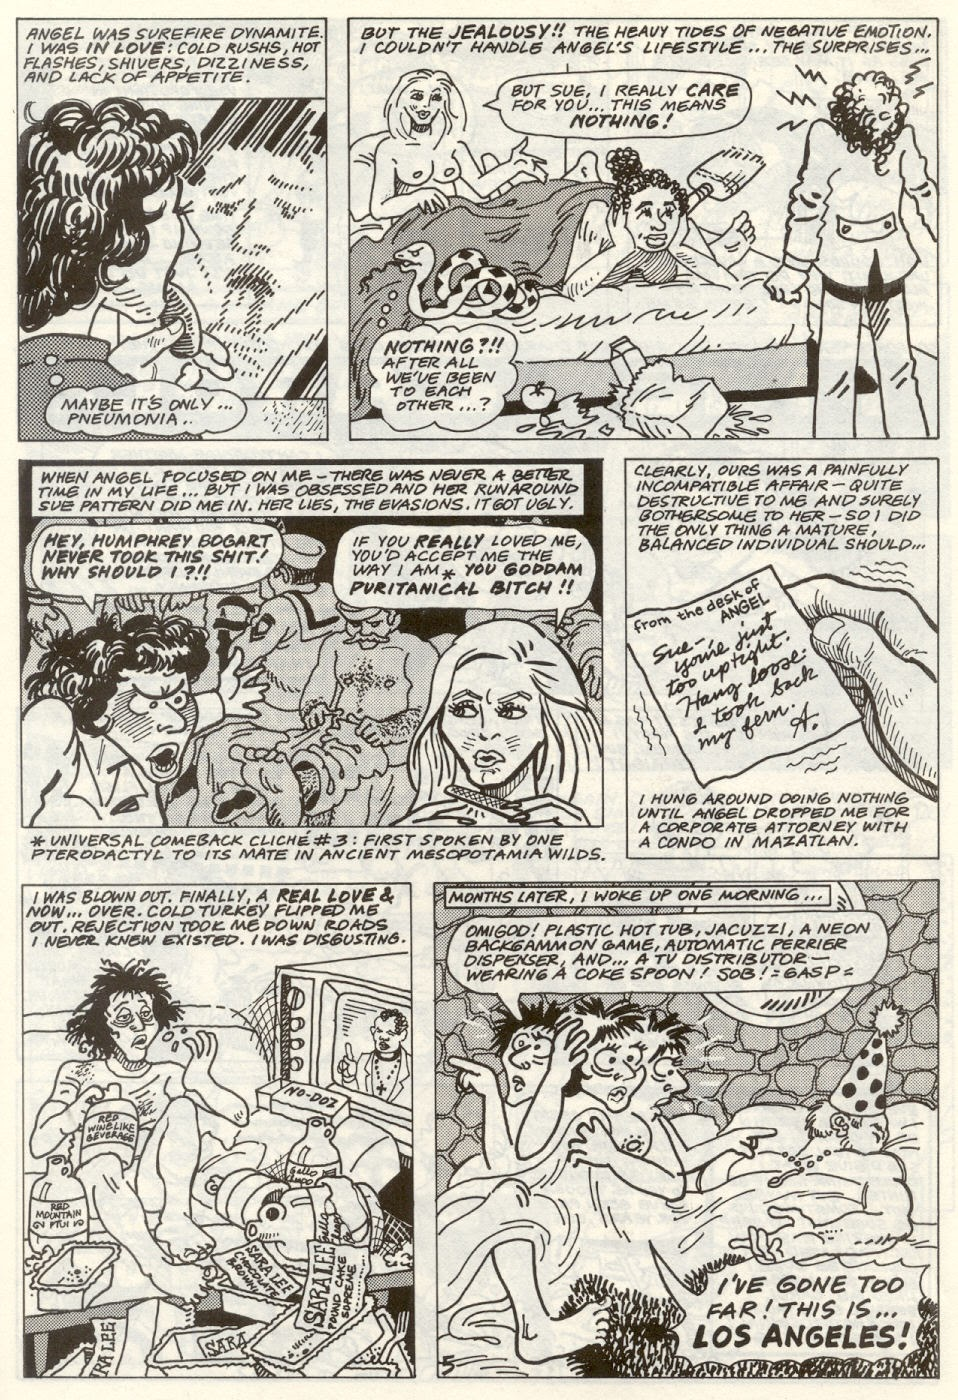 Gay Comix (Gay Comics) issue 1 - Page 8